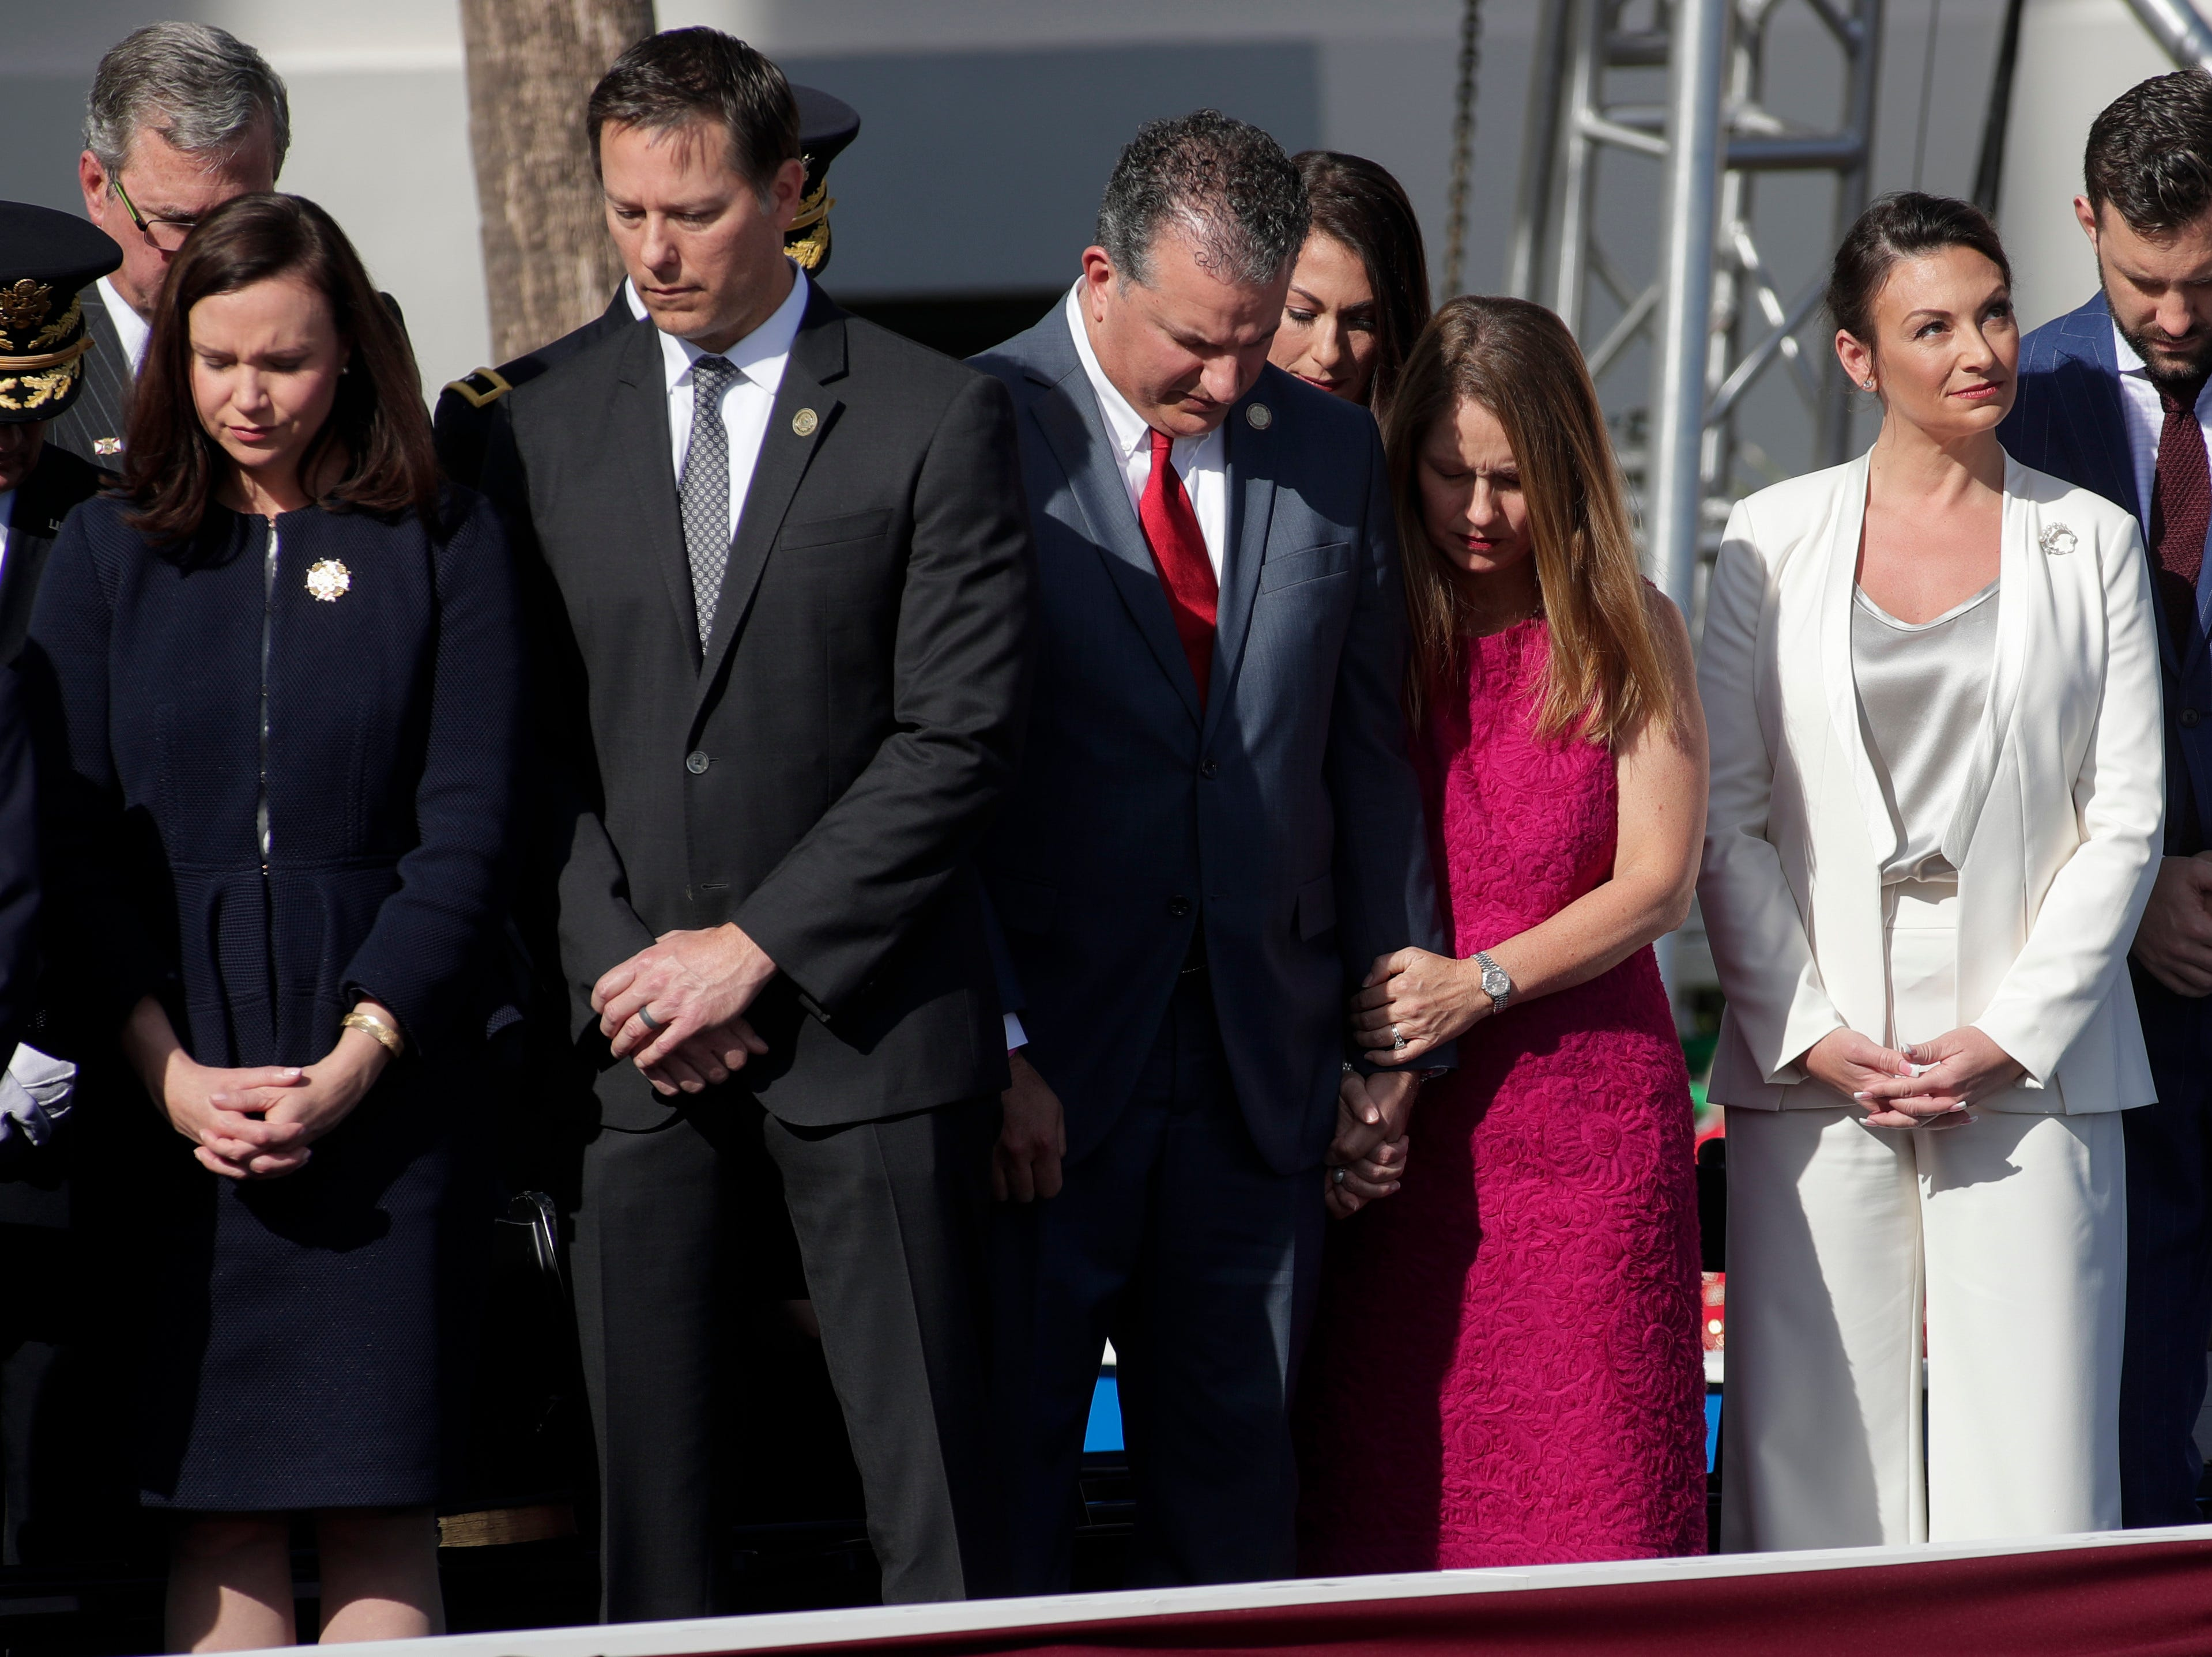 Commissioner of Agriculture and Consumer Services Nikki Fried looks to the sky during an invocation by Rev. Gary Johnson during the 2019 inauguration ceremony on the steps of the Historic Capitol Building in Tallahassee Tuesday, Jan. 8, 2019.